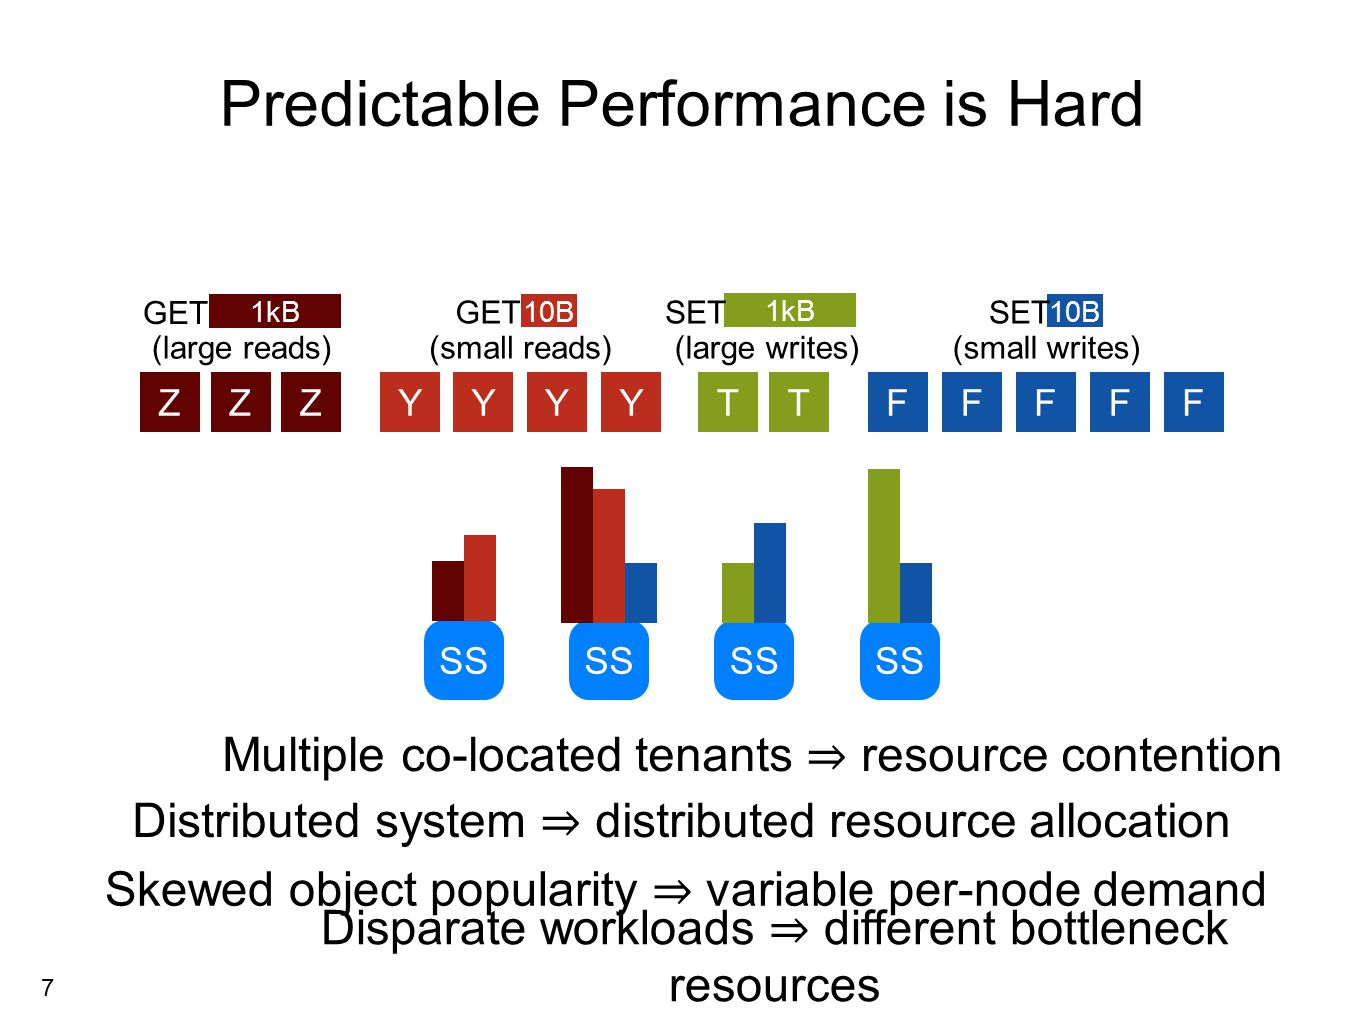 7 ZYTFZYFTYYZFFFZYTFZYFTYYZFFF SS Skewed object popularity ⇒ variable per-node demand Multiple co-located tenants ⇒ resource contention Distributed system ⇒ distributed resource allocation 1kB GET 10B GET 1kB SET 10B SET (small reads)(large reads)(large writes)(small writes) Disparate workloads ⇒ different bottleneck resources Predictable Performance is Hard